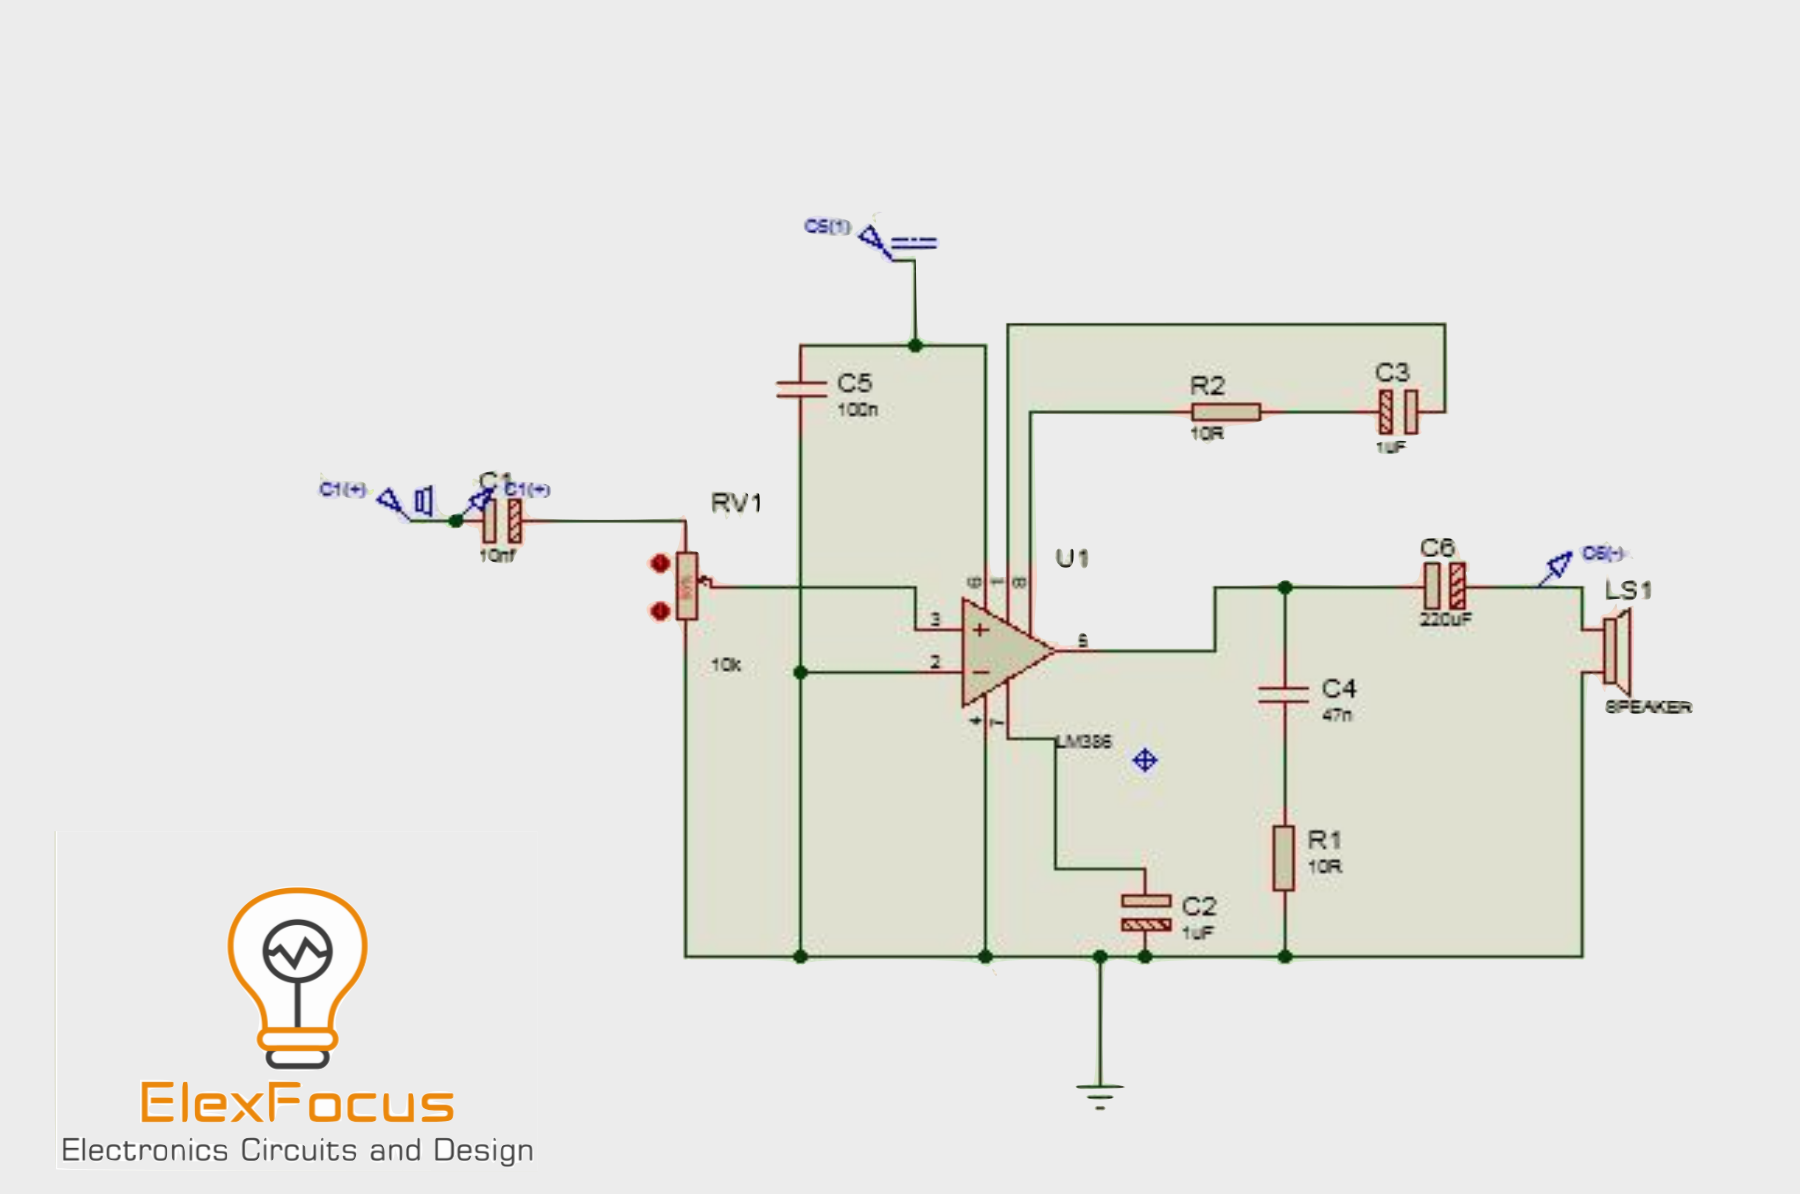 Lm386 Audio Amplifier Circuit With Proteus Simulation Basic Software Free For More Details And Complete Guide Go To The Website Audioamplifier